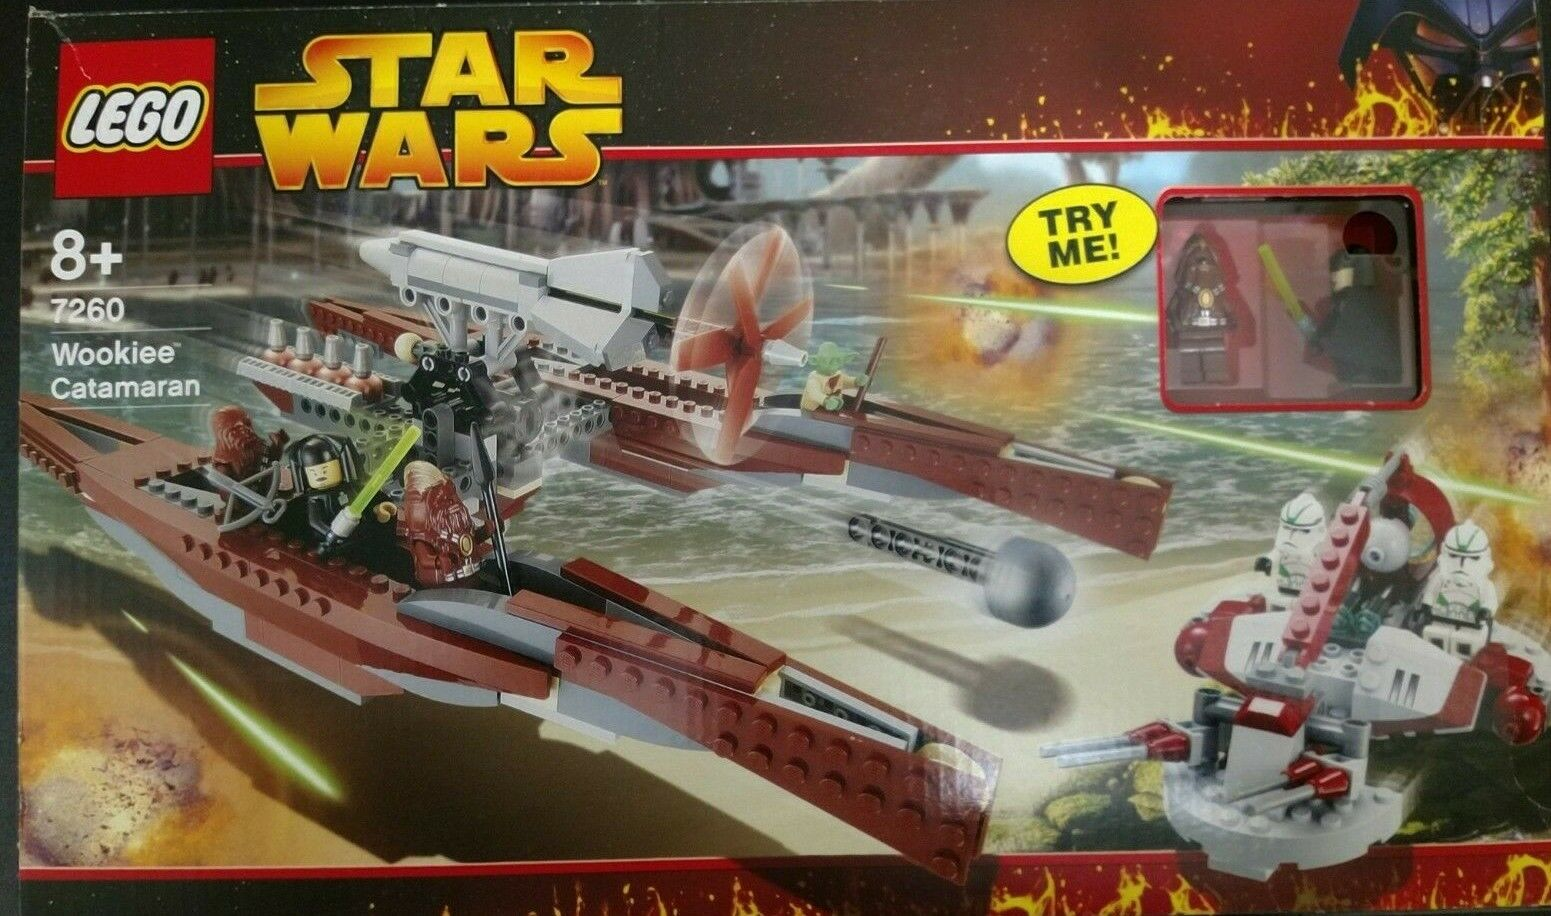 LEGO Star Wars 7260  - Wookie Catamaran Rare RETIRED SET, SEALED NEW very RARE